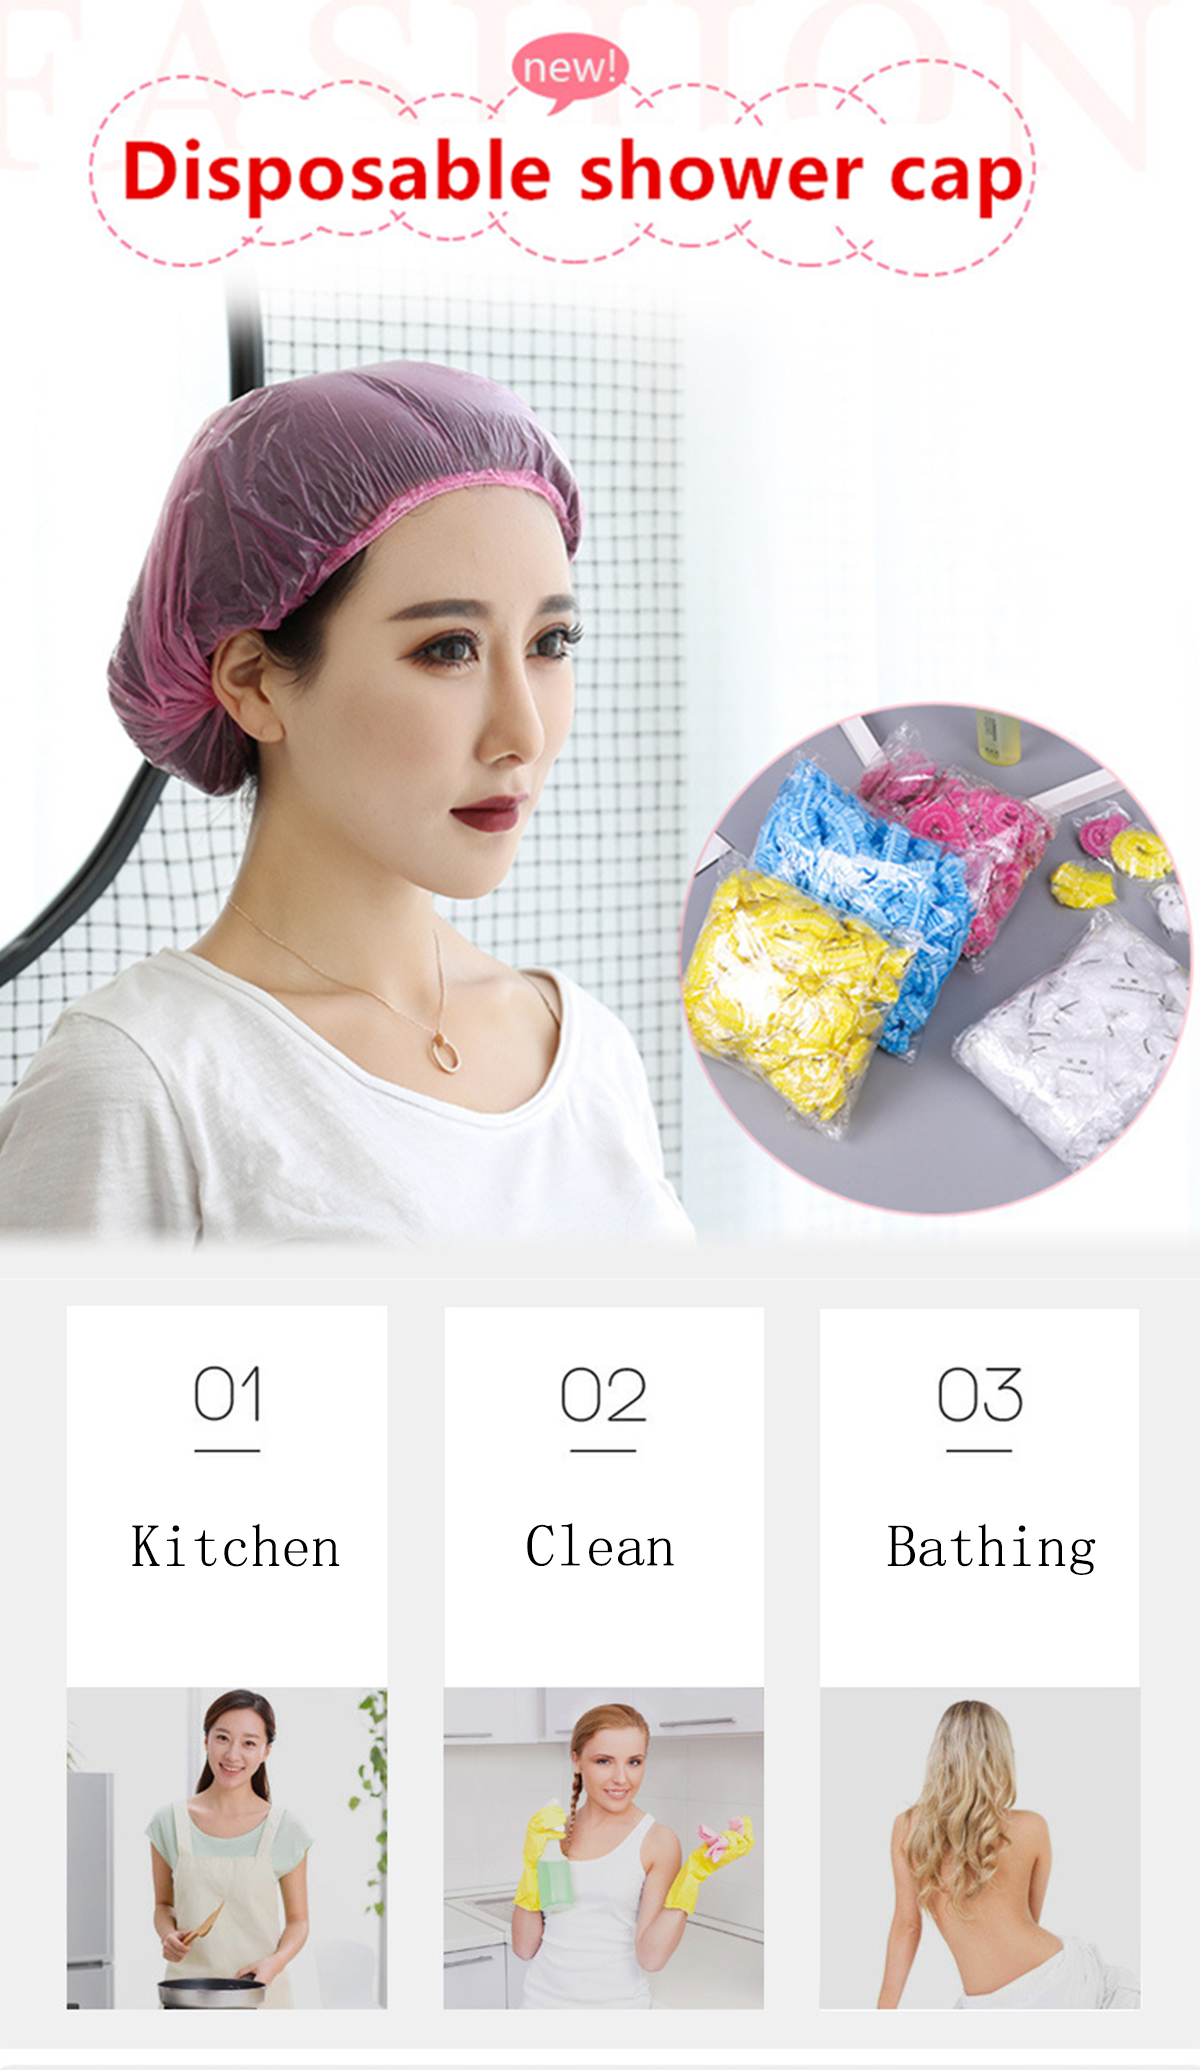 Bath & Shower Well-Educated High Quality 100pcs Elastic Transparent One-off Shower Hair Cap Cover Bath Salon Spa Hat Hotle Bathroom Accessories Disposable Buy One Get One Free Beauty & Health